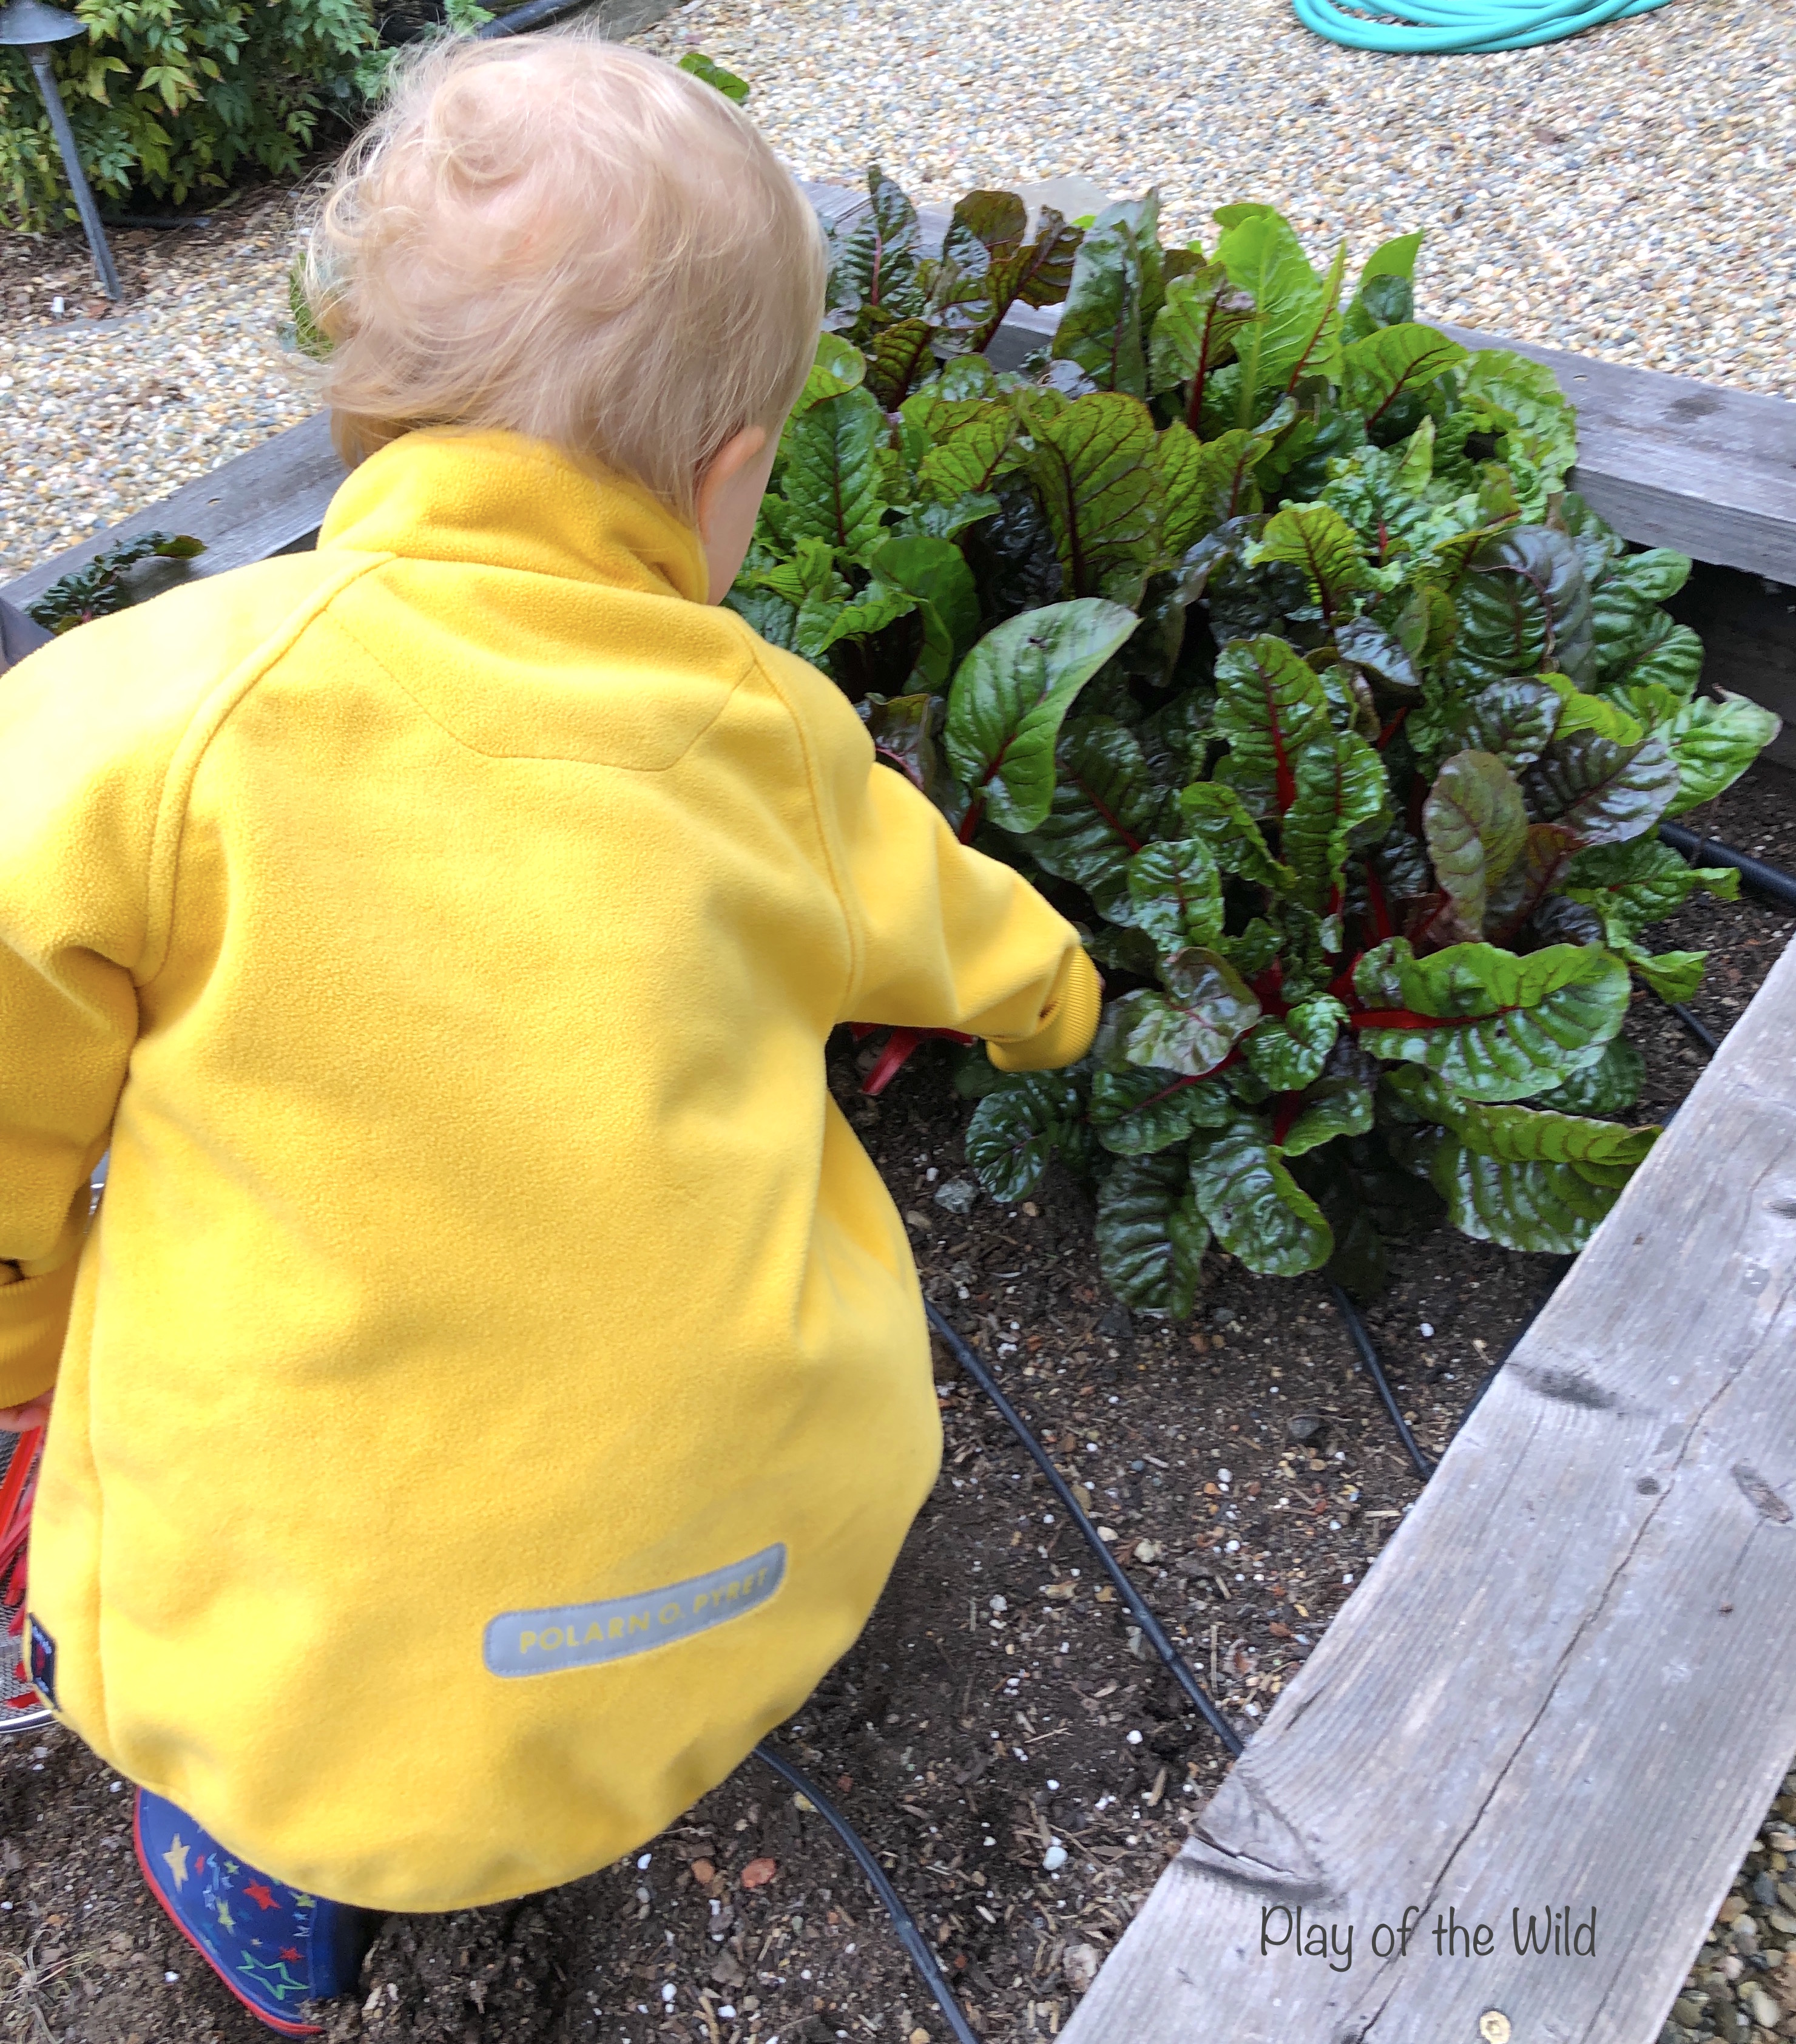 Outdoor Autumn & Winter Garden Activities for Children. harvesting rainbow chard / swiss chard.